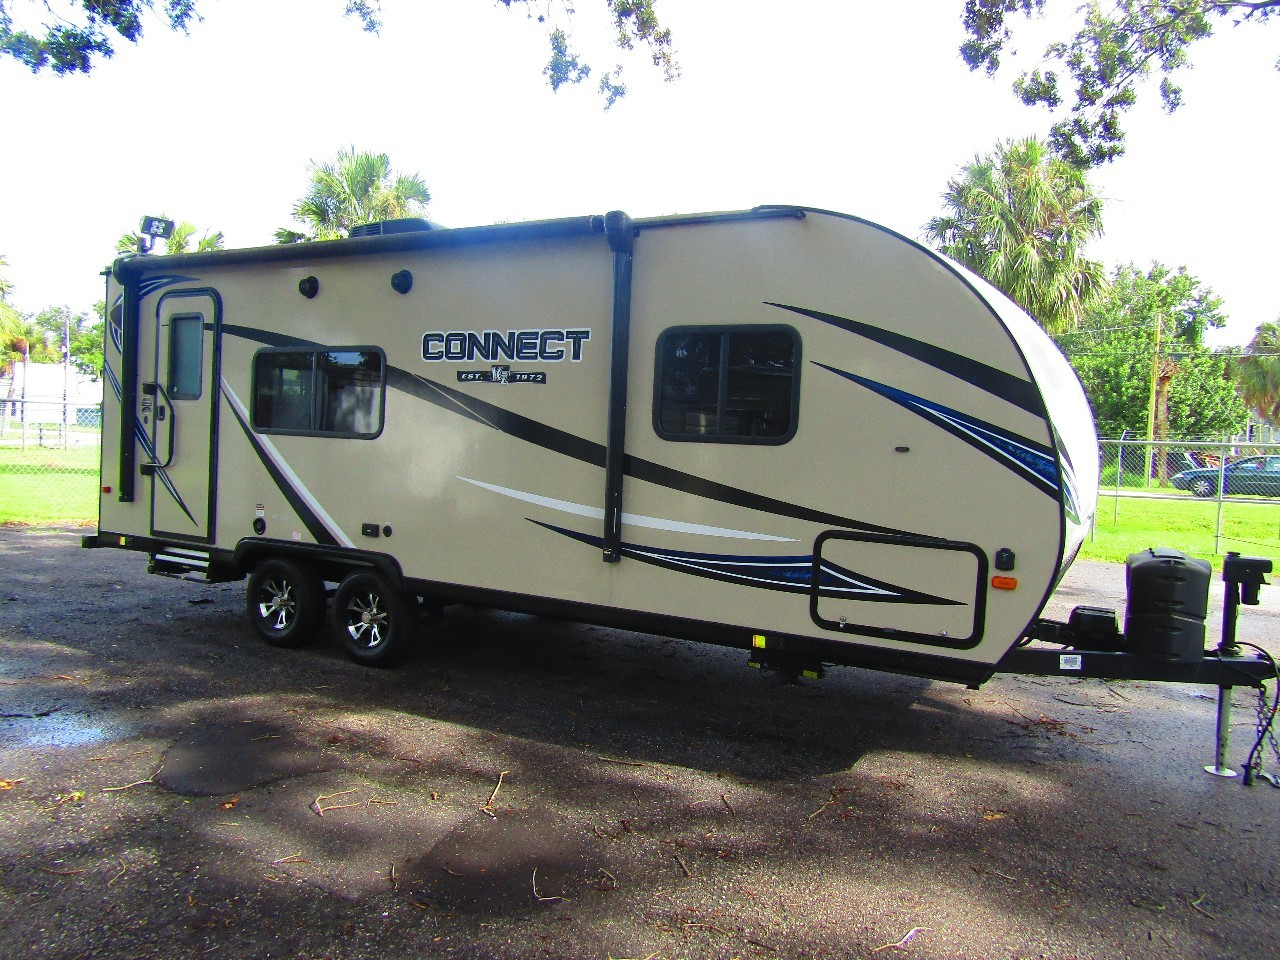 Rvs For Sale 346 Home Trailer Hitches Hitch Wiring Curt Adapters Duplex